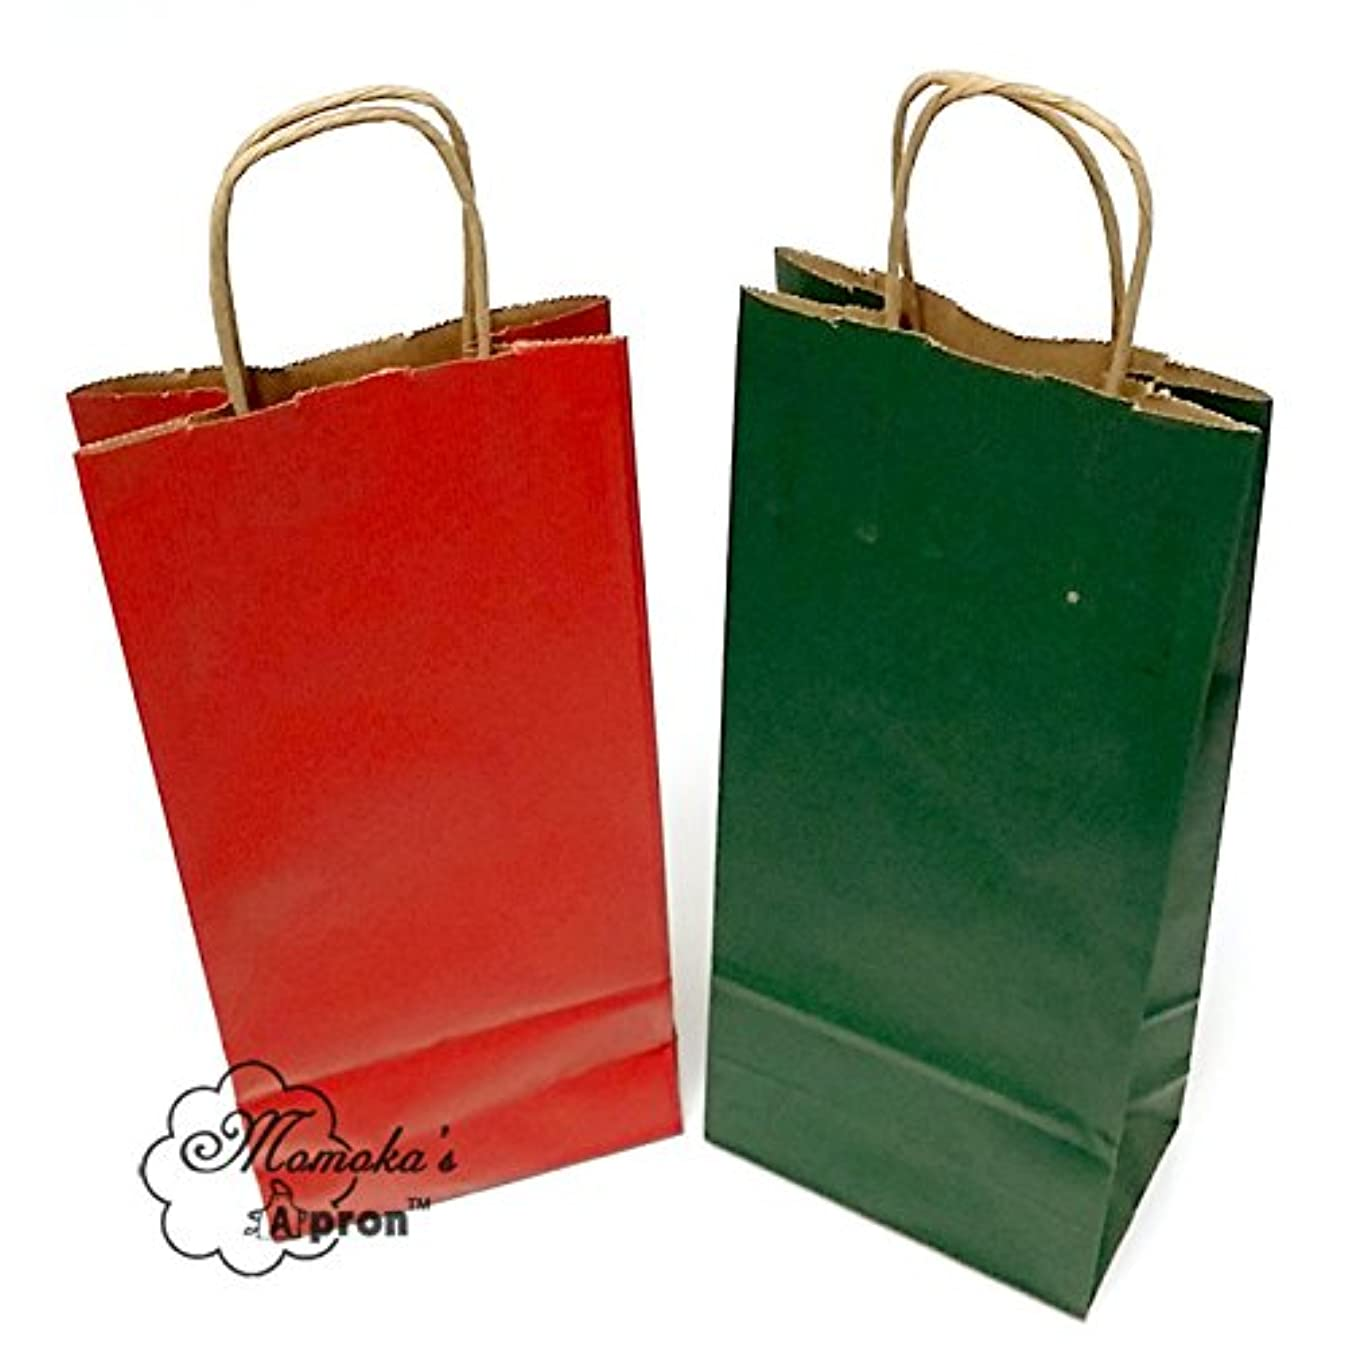 Momoka's Apron 50 ct Wine Paper Gift Bags Made in USA (25 Christmas Red and 25 Forest Green)